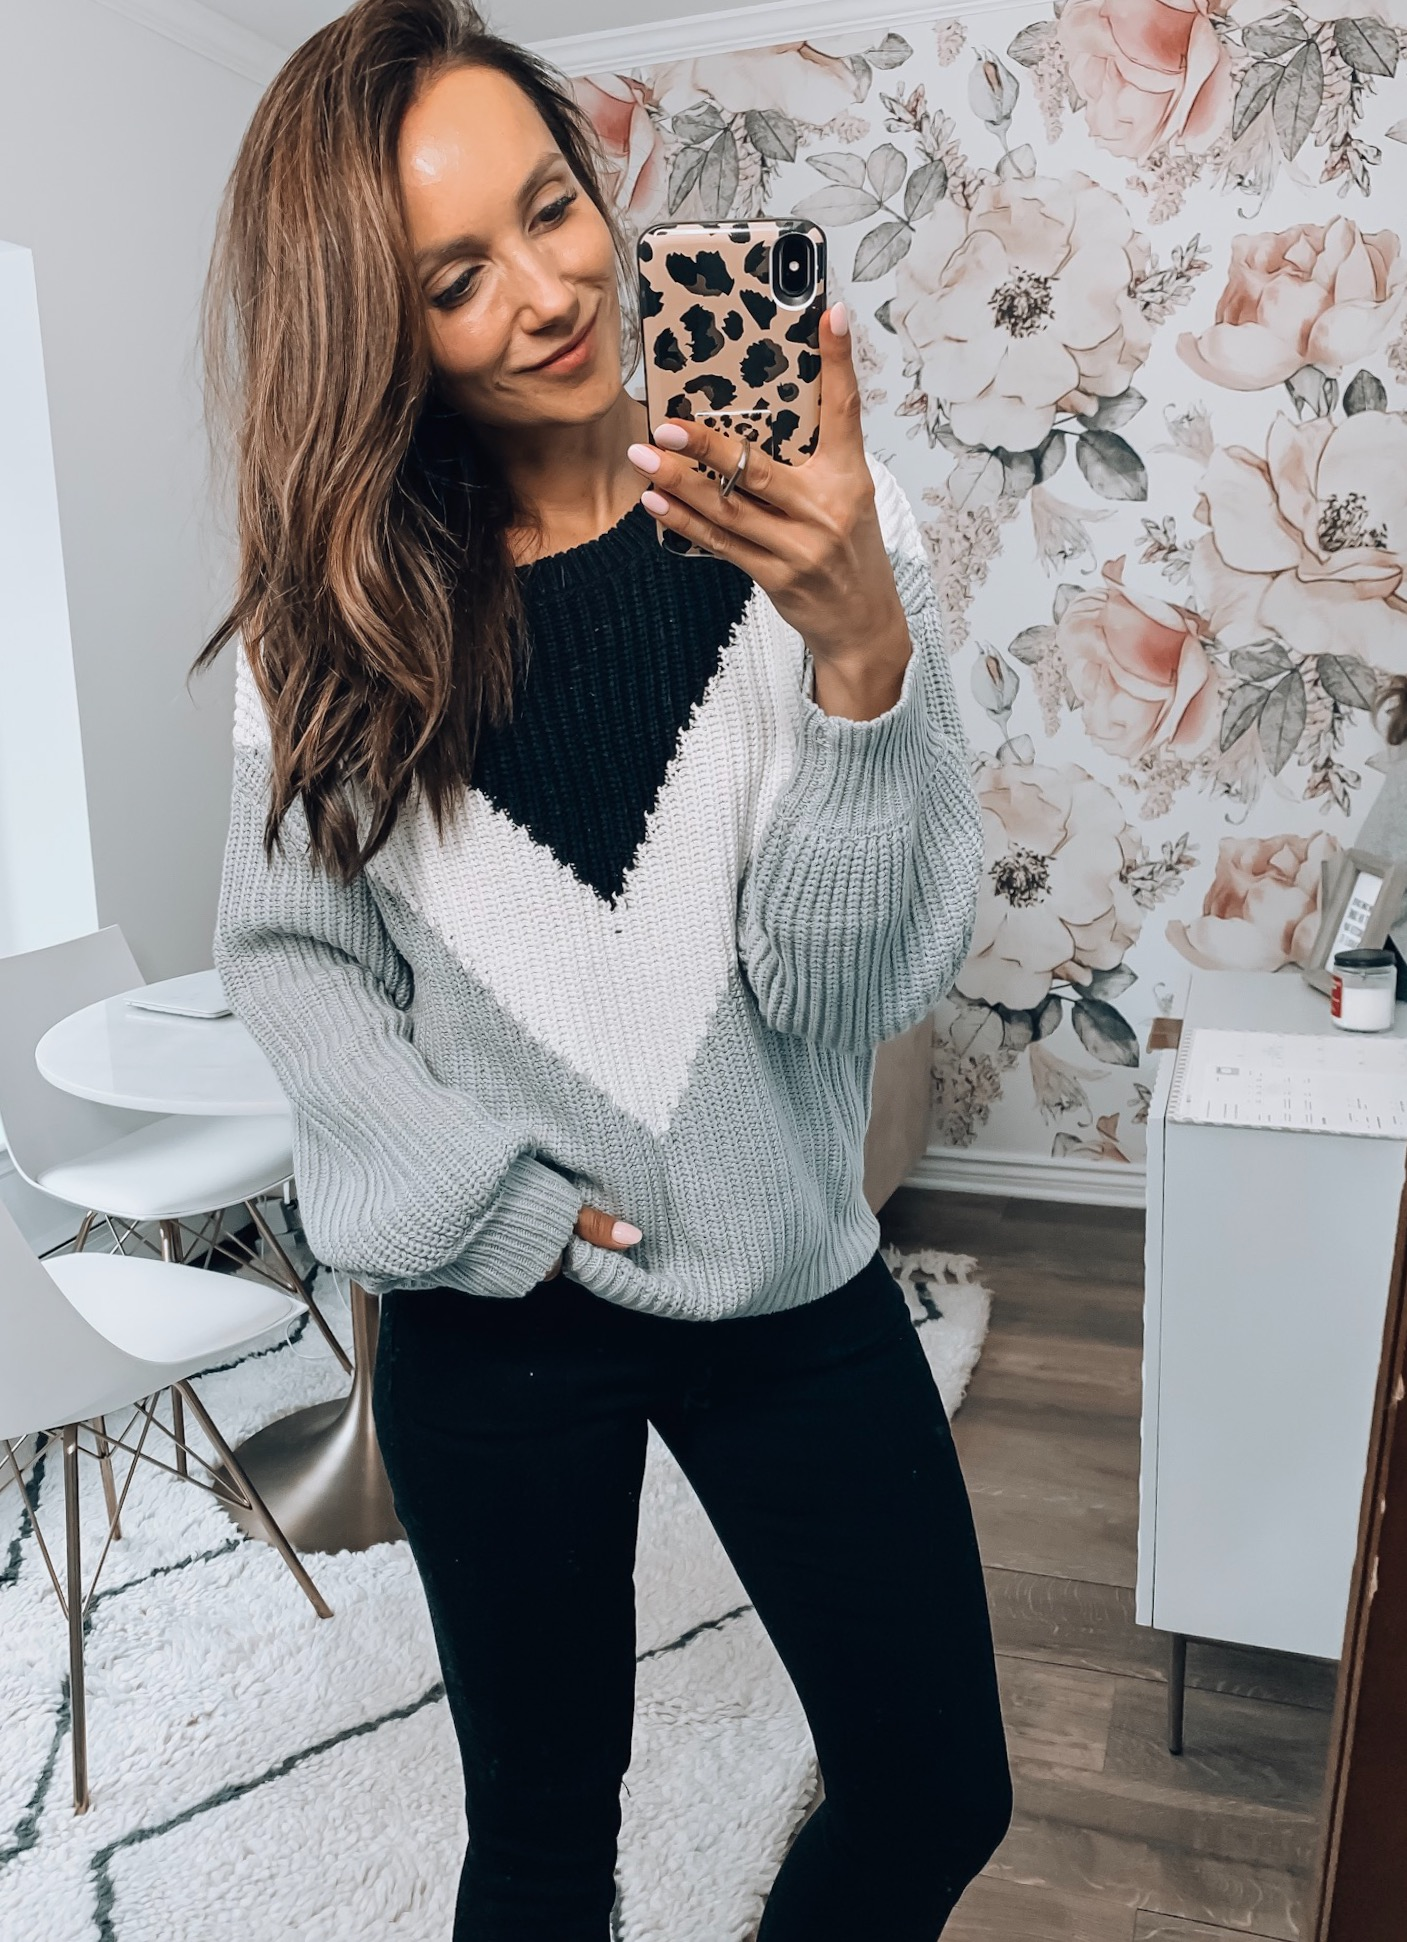 PULLOVER SWEATER, JEANS